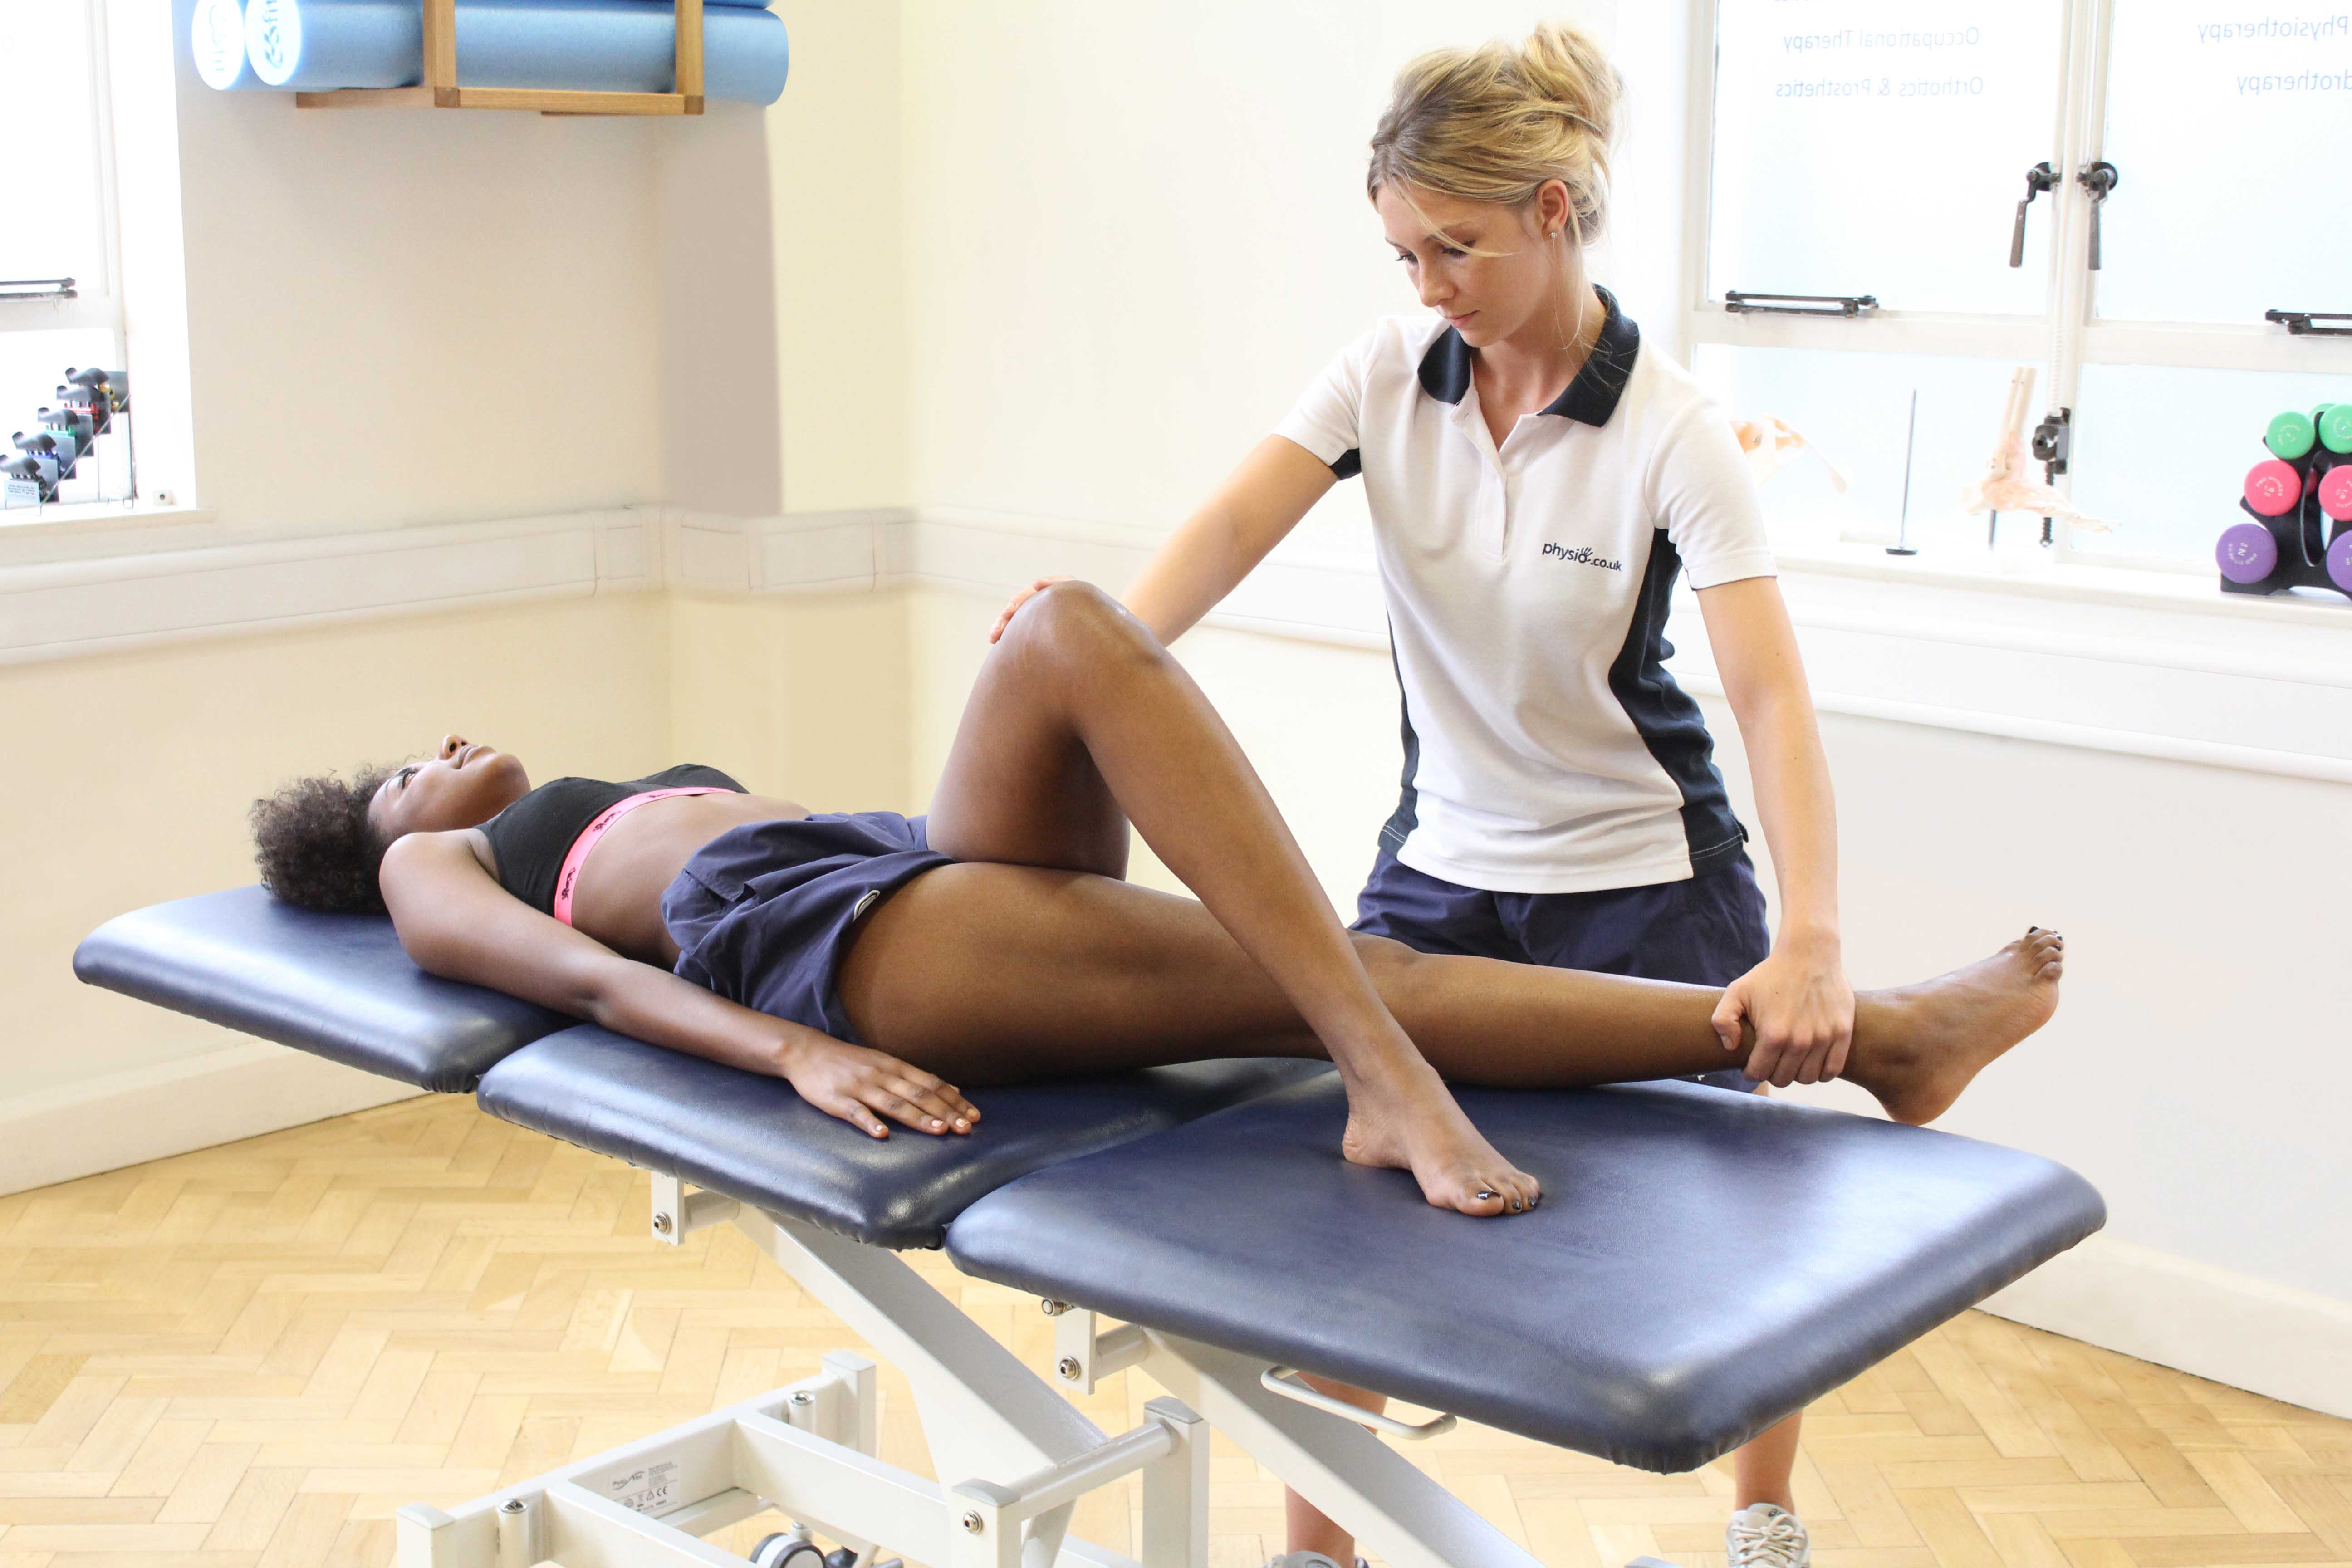 Leg strengthening exercises on a cross trainer supervised by an experienced physiotherapist